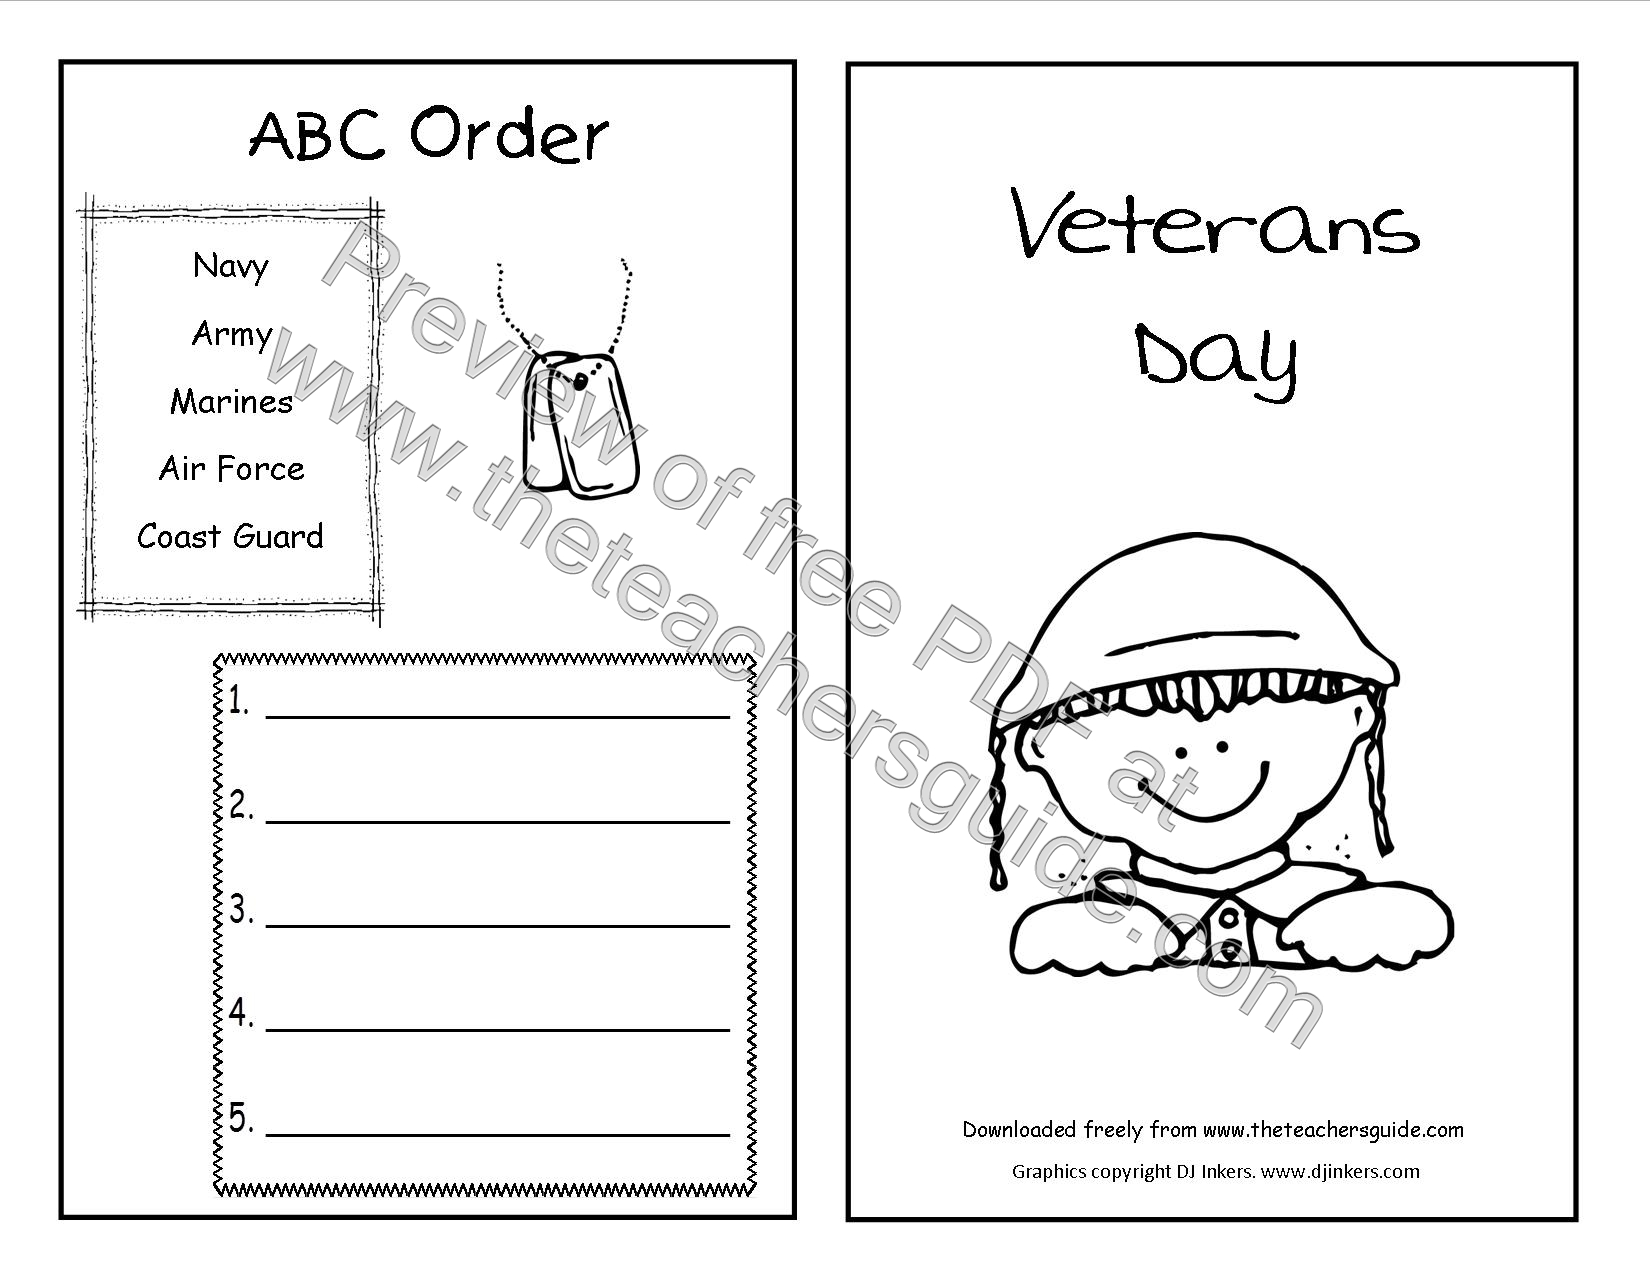 Printables Veterans Day Worksheets veterans day lesson plans themes printouts crafts activity booklet